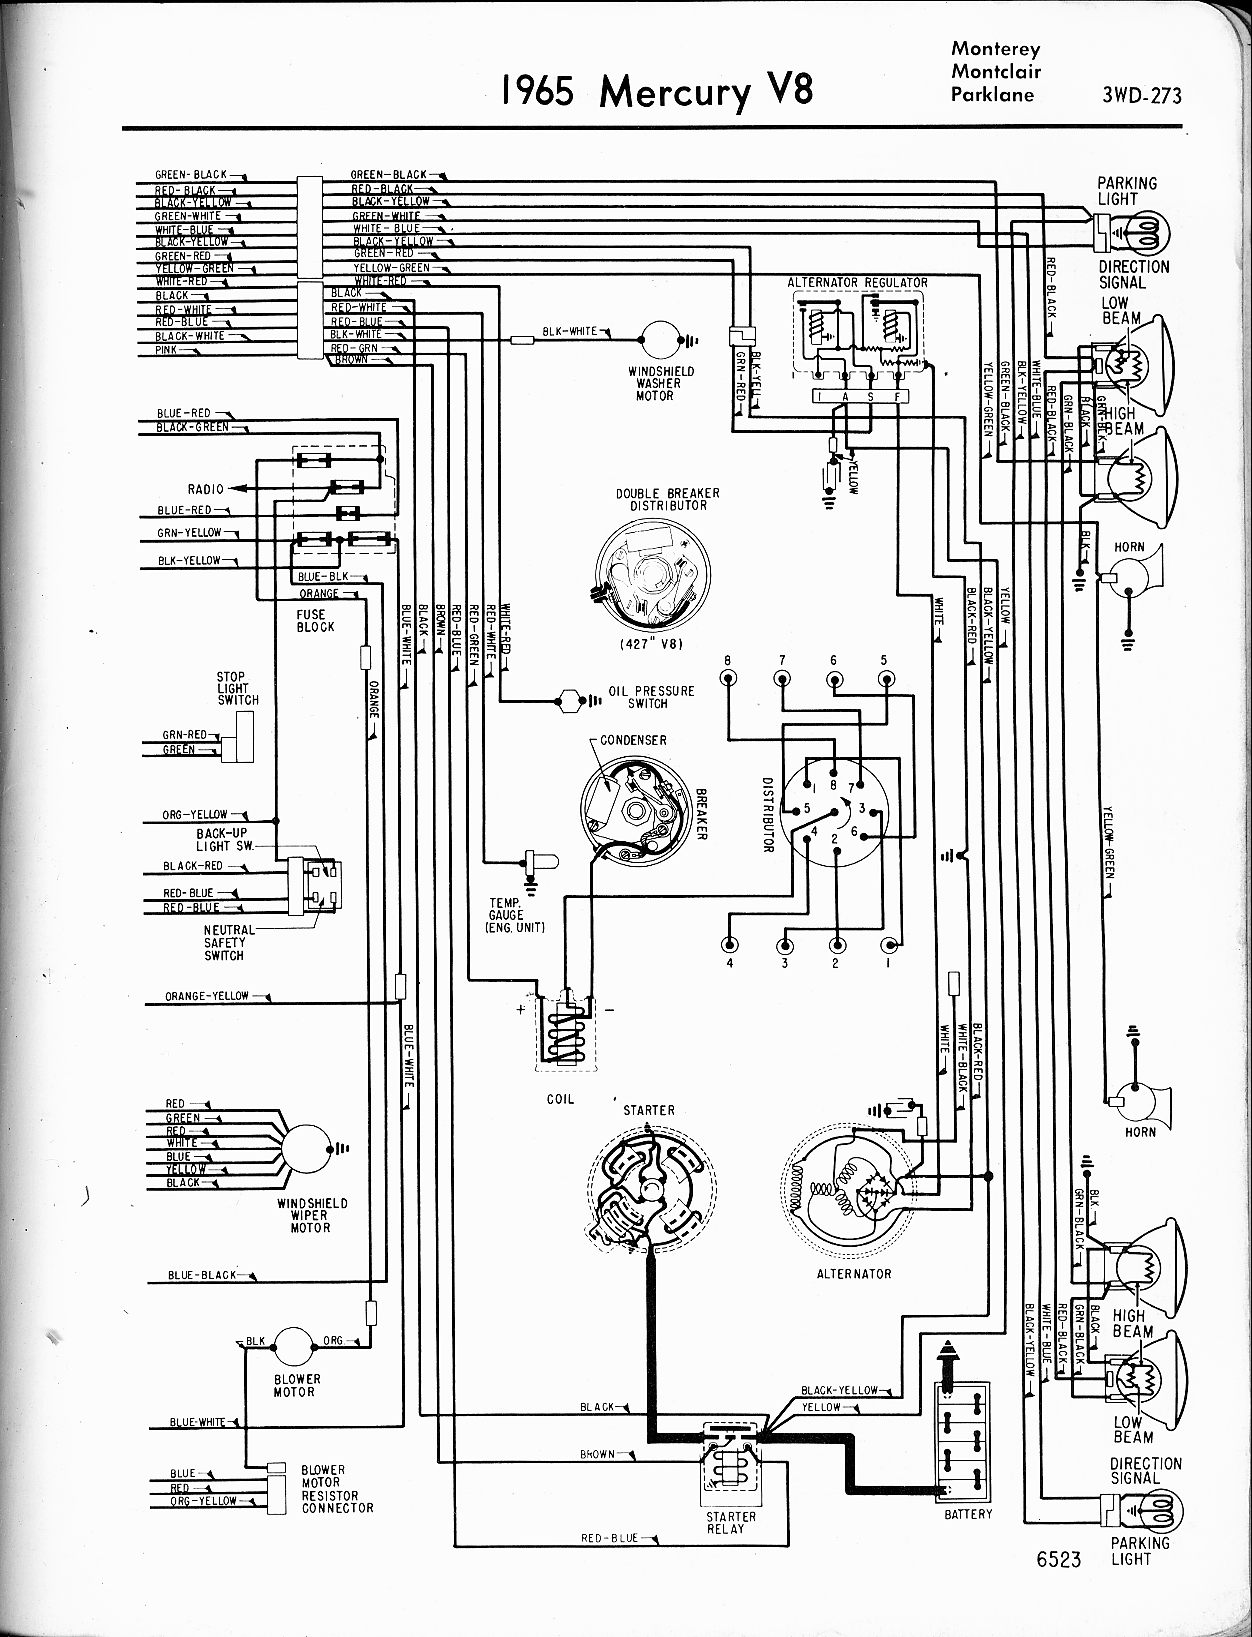 Cat Truck Wiring Diagrams. Wiring. Wiring Diagrams Instructions